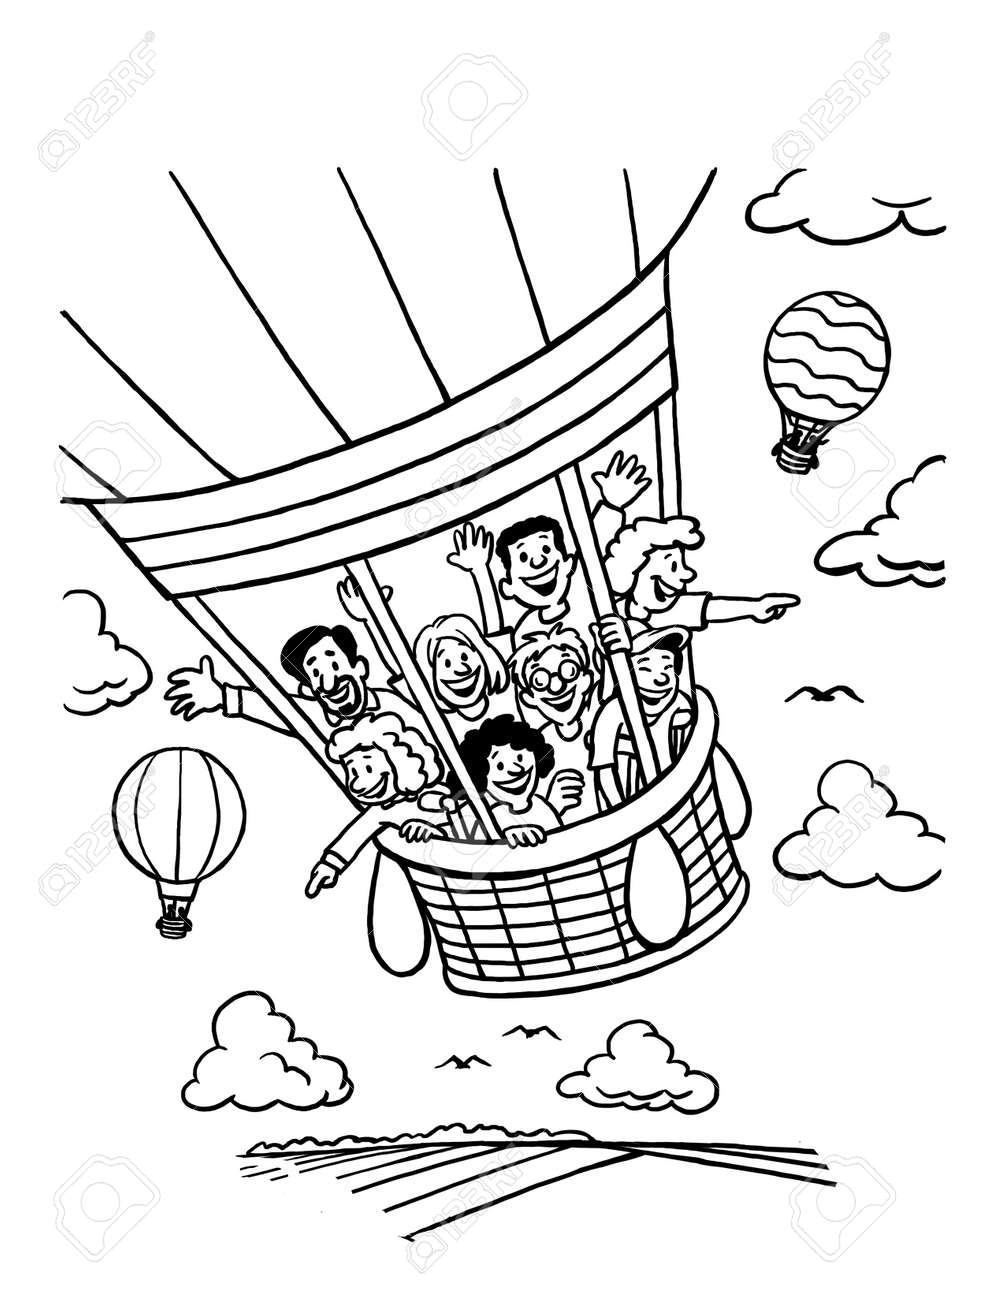 hot air balloon coloring pages - Free Large Images | 1300x1004